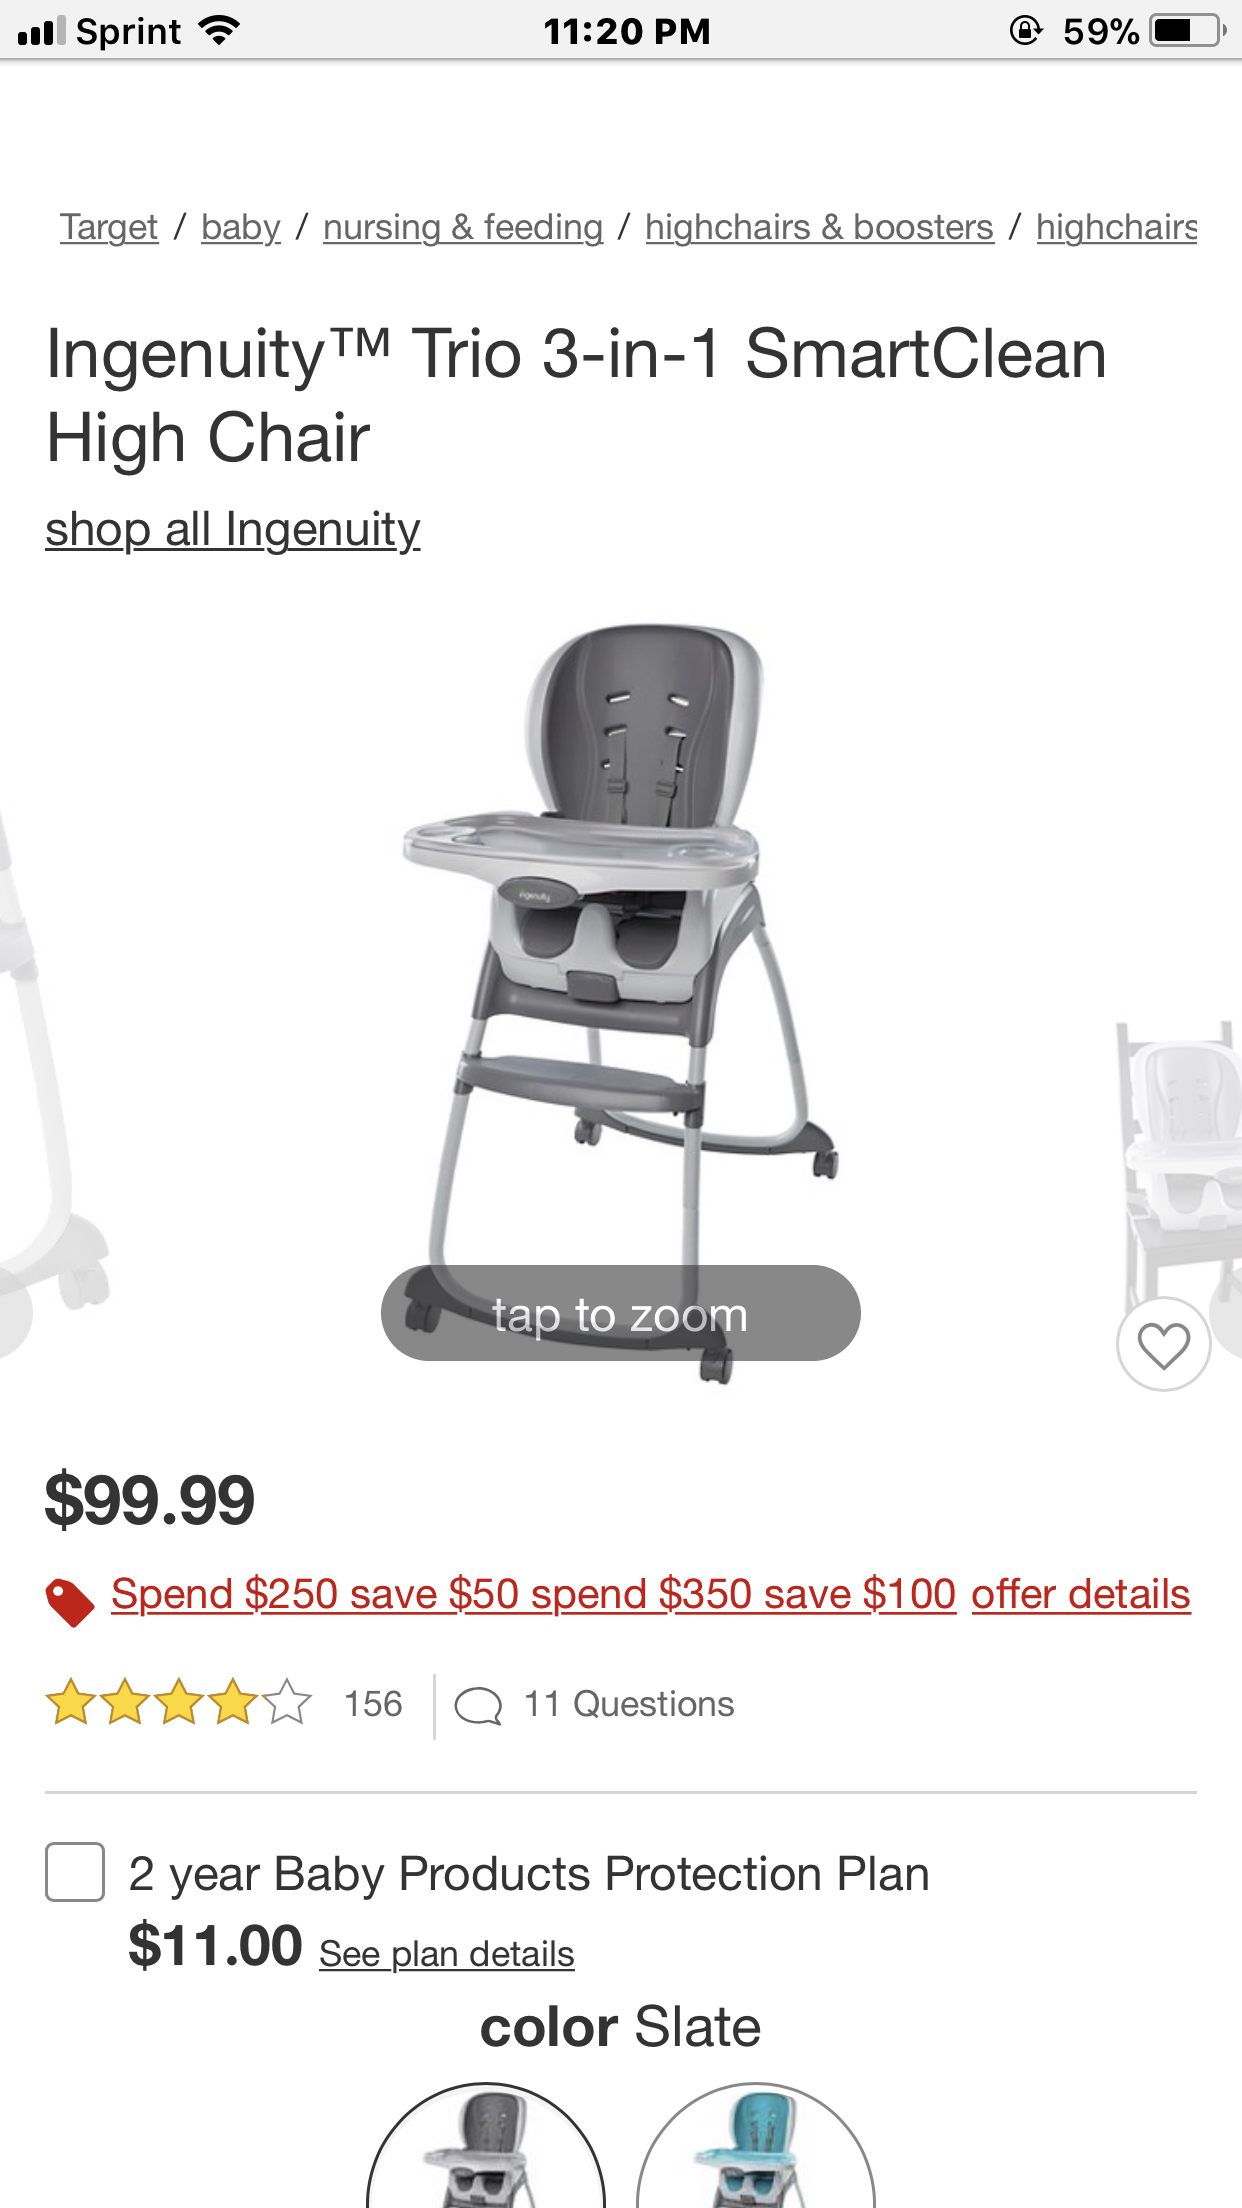 3 in one high chair plans wholesale chairs and tables reccomendations april 2017 babies forums what to expect we have this it s great grows with the baby worth price forsure